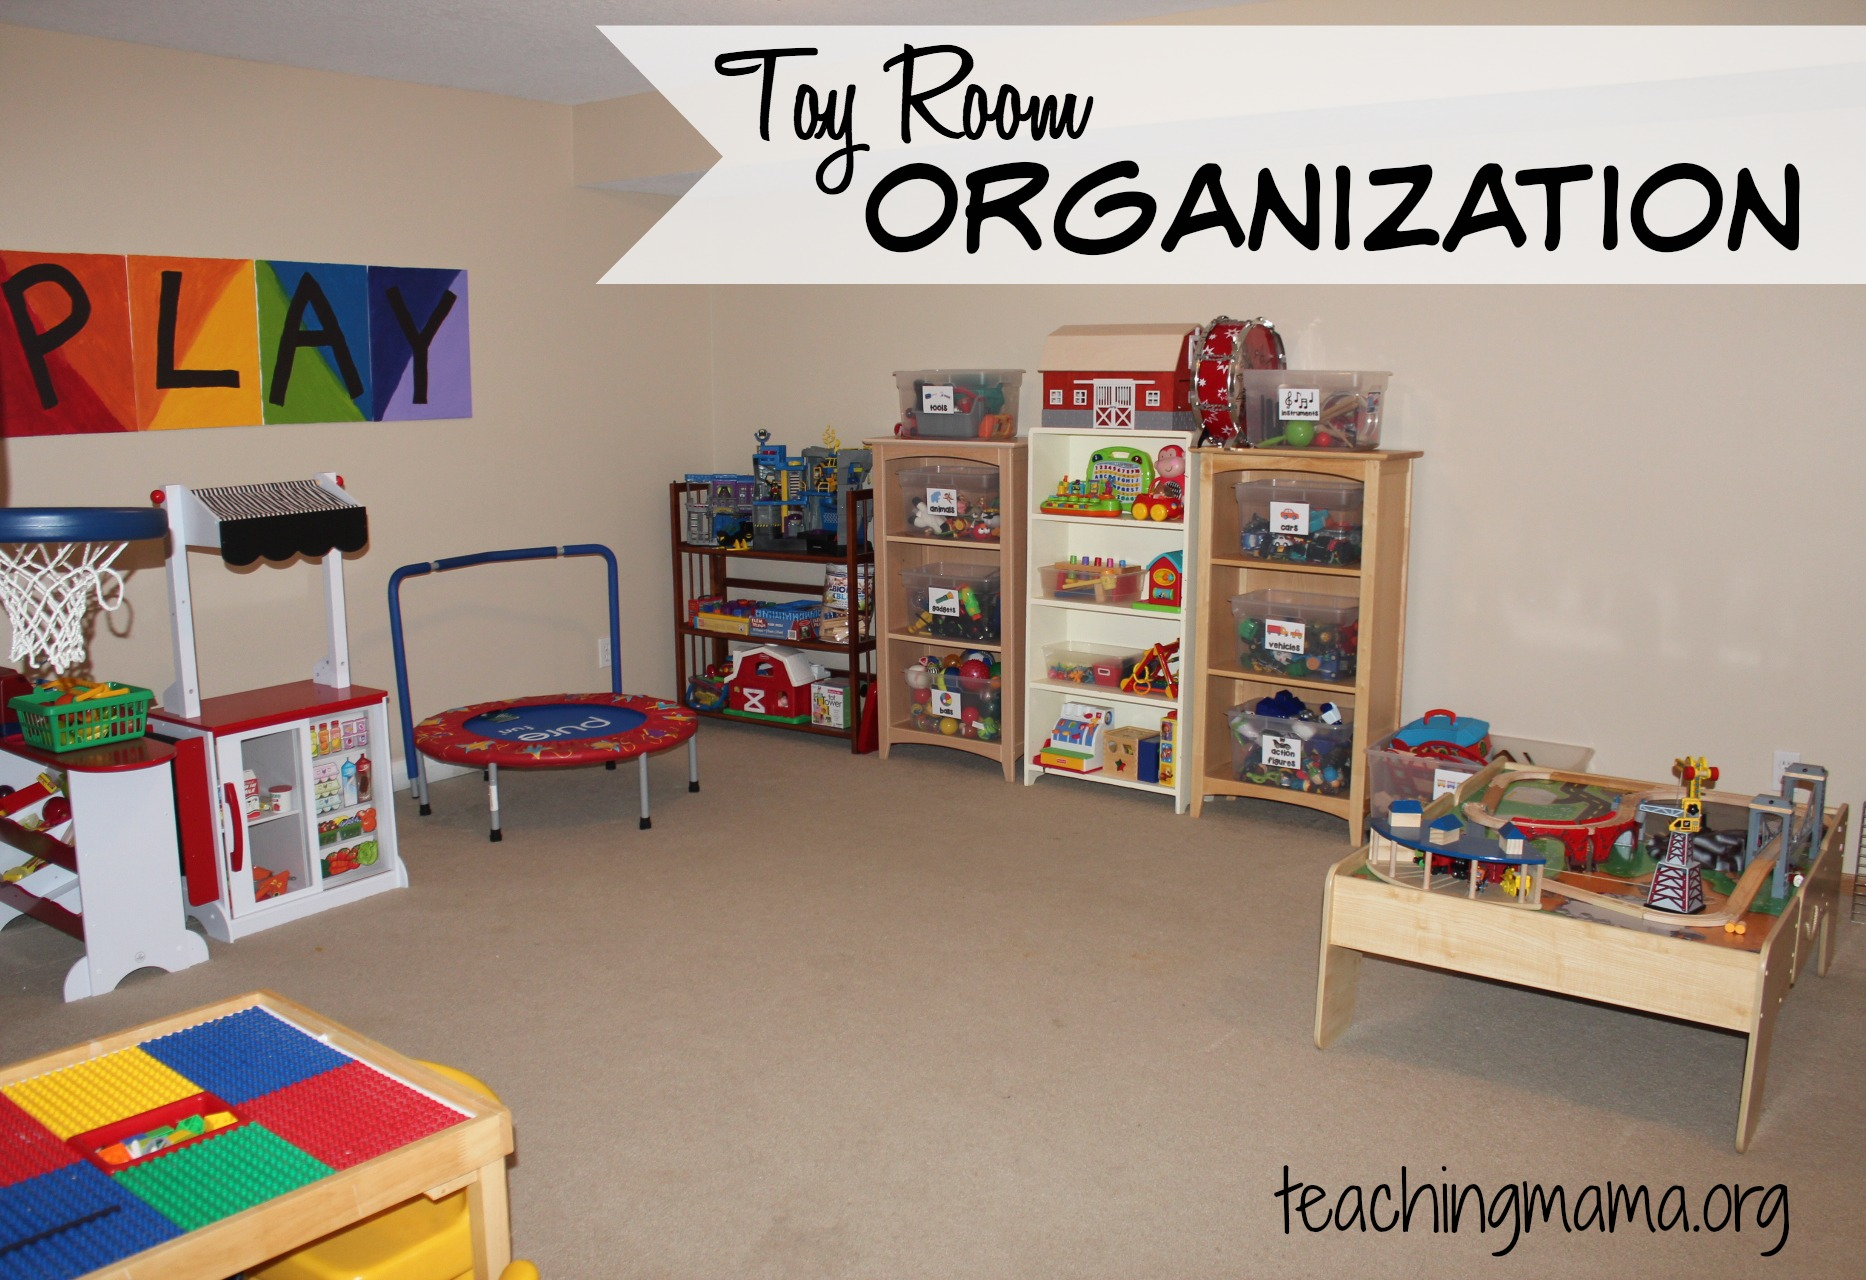 11 Tips For Keeping Kids Toys Organized: Toy Room Organization & Free Toy Bin Labels